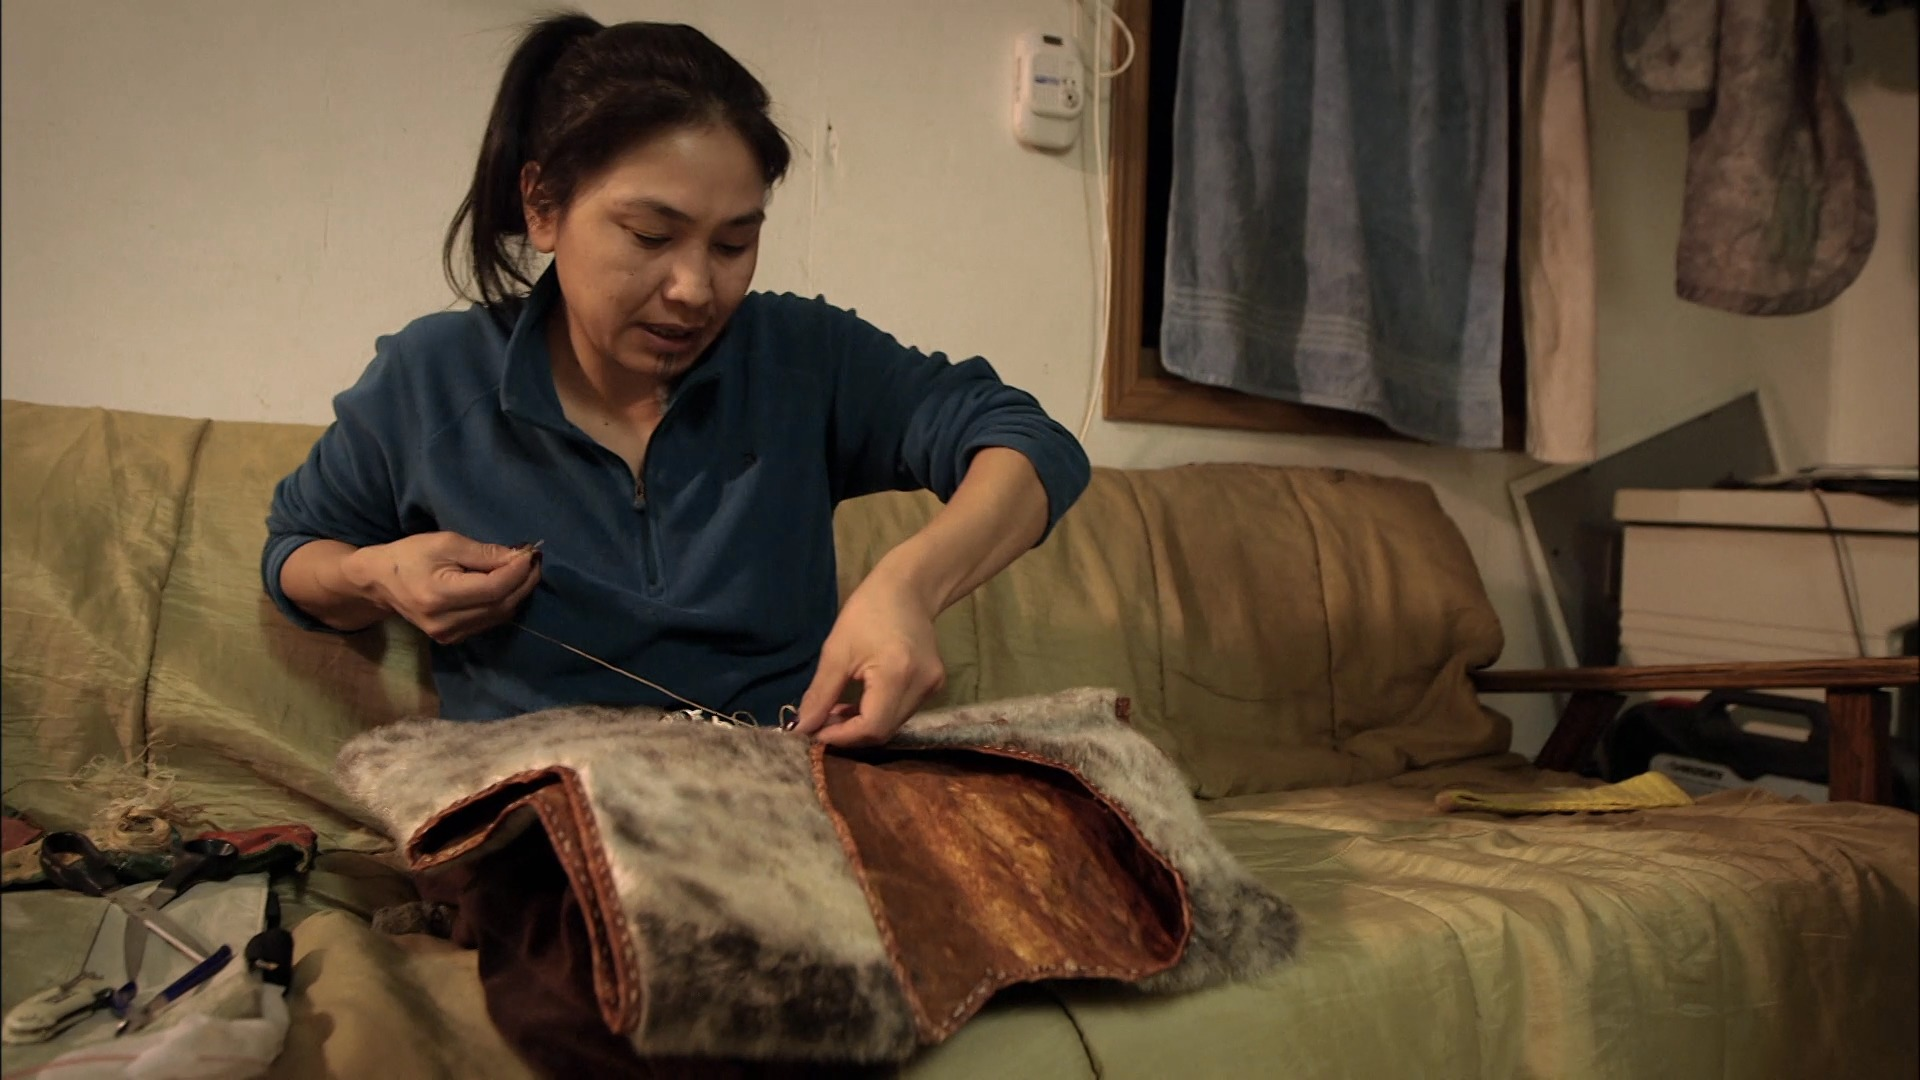 Agnes Hailstone is stitching a coat out of a animal fur. She is sitting in a sofa in her living room.